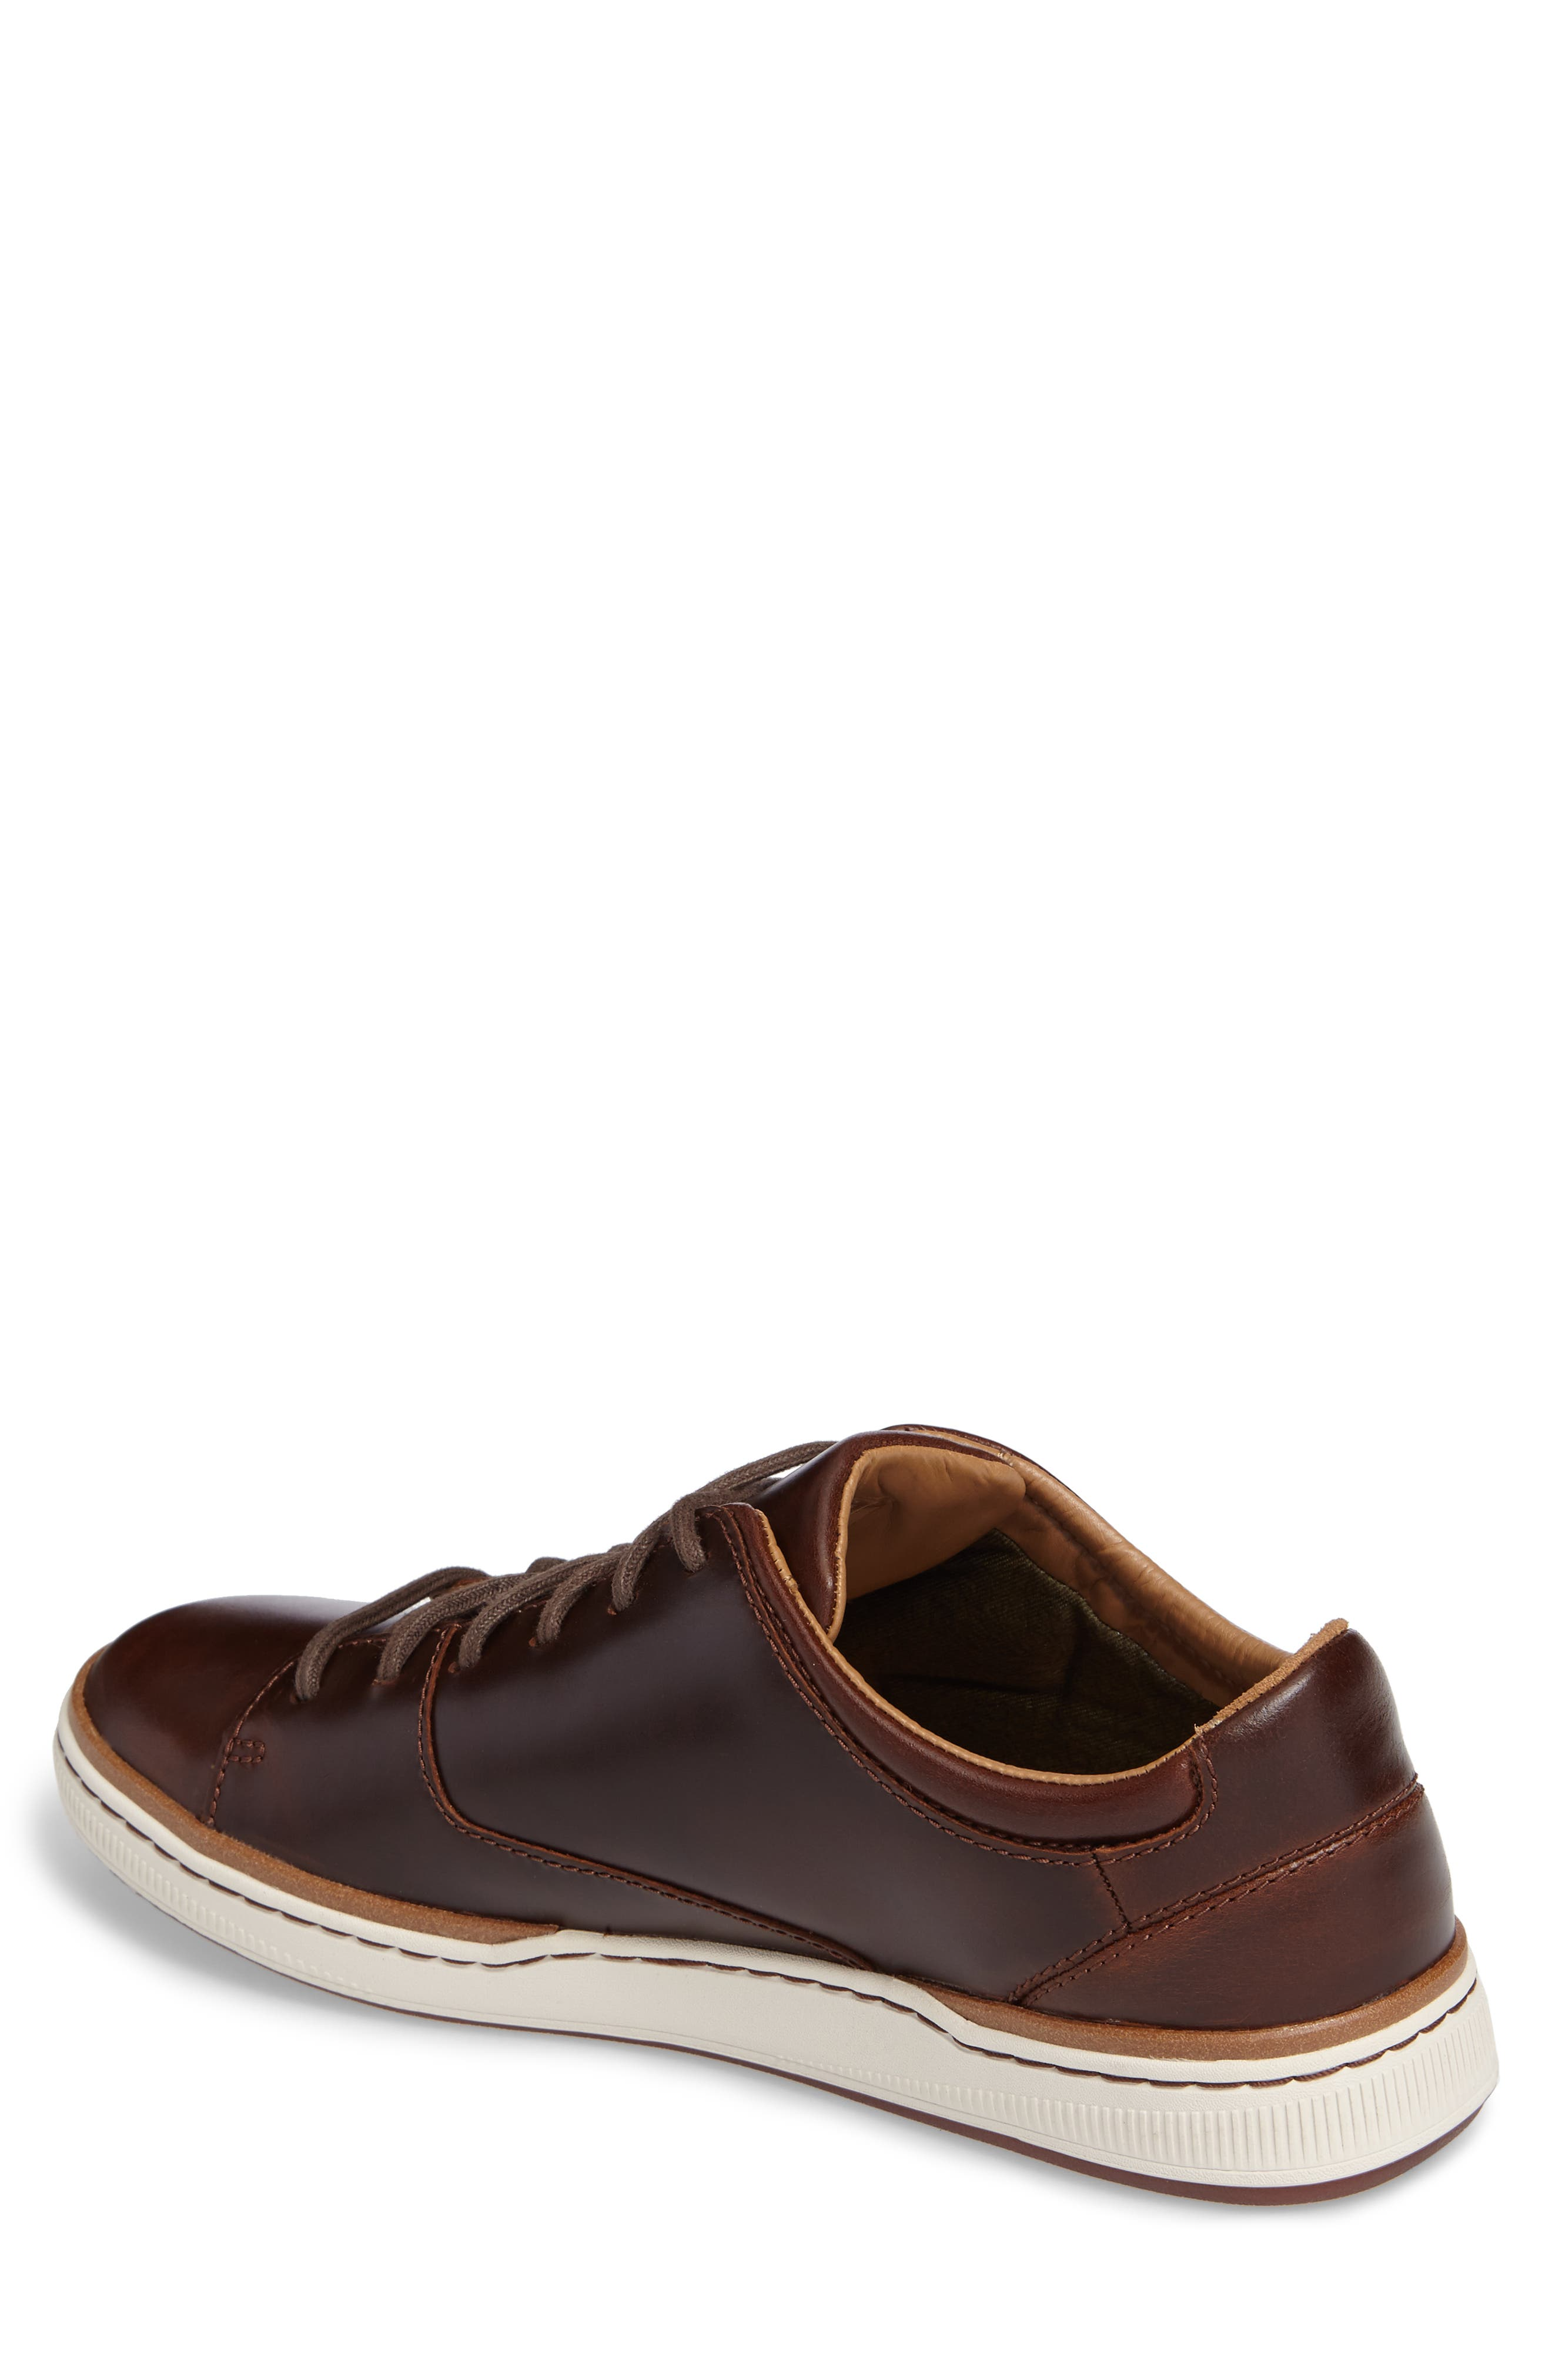 CLARKS<SUP>®</SUP>, Norsen Lace Sneaker, Alternate thumbnail 2, color, DARK TAN LEATHER